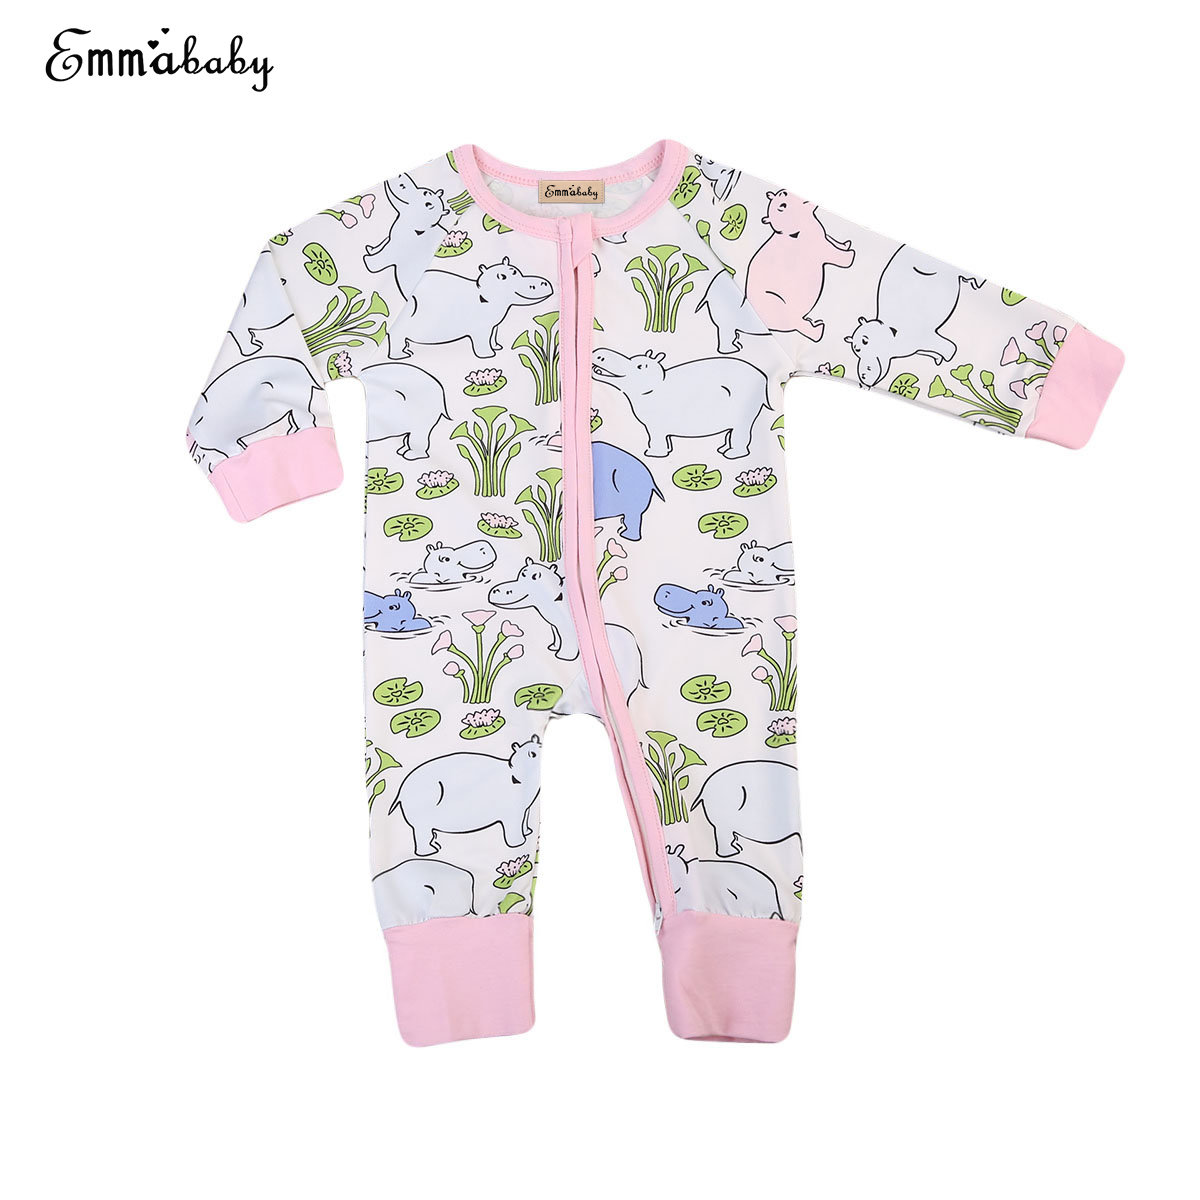 7cea1244c great fit 1fb8d 658f4 emmababy newborn infant baby girls long sleeve ...